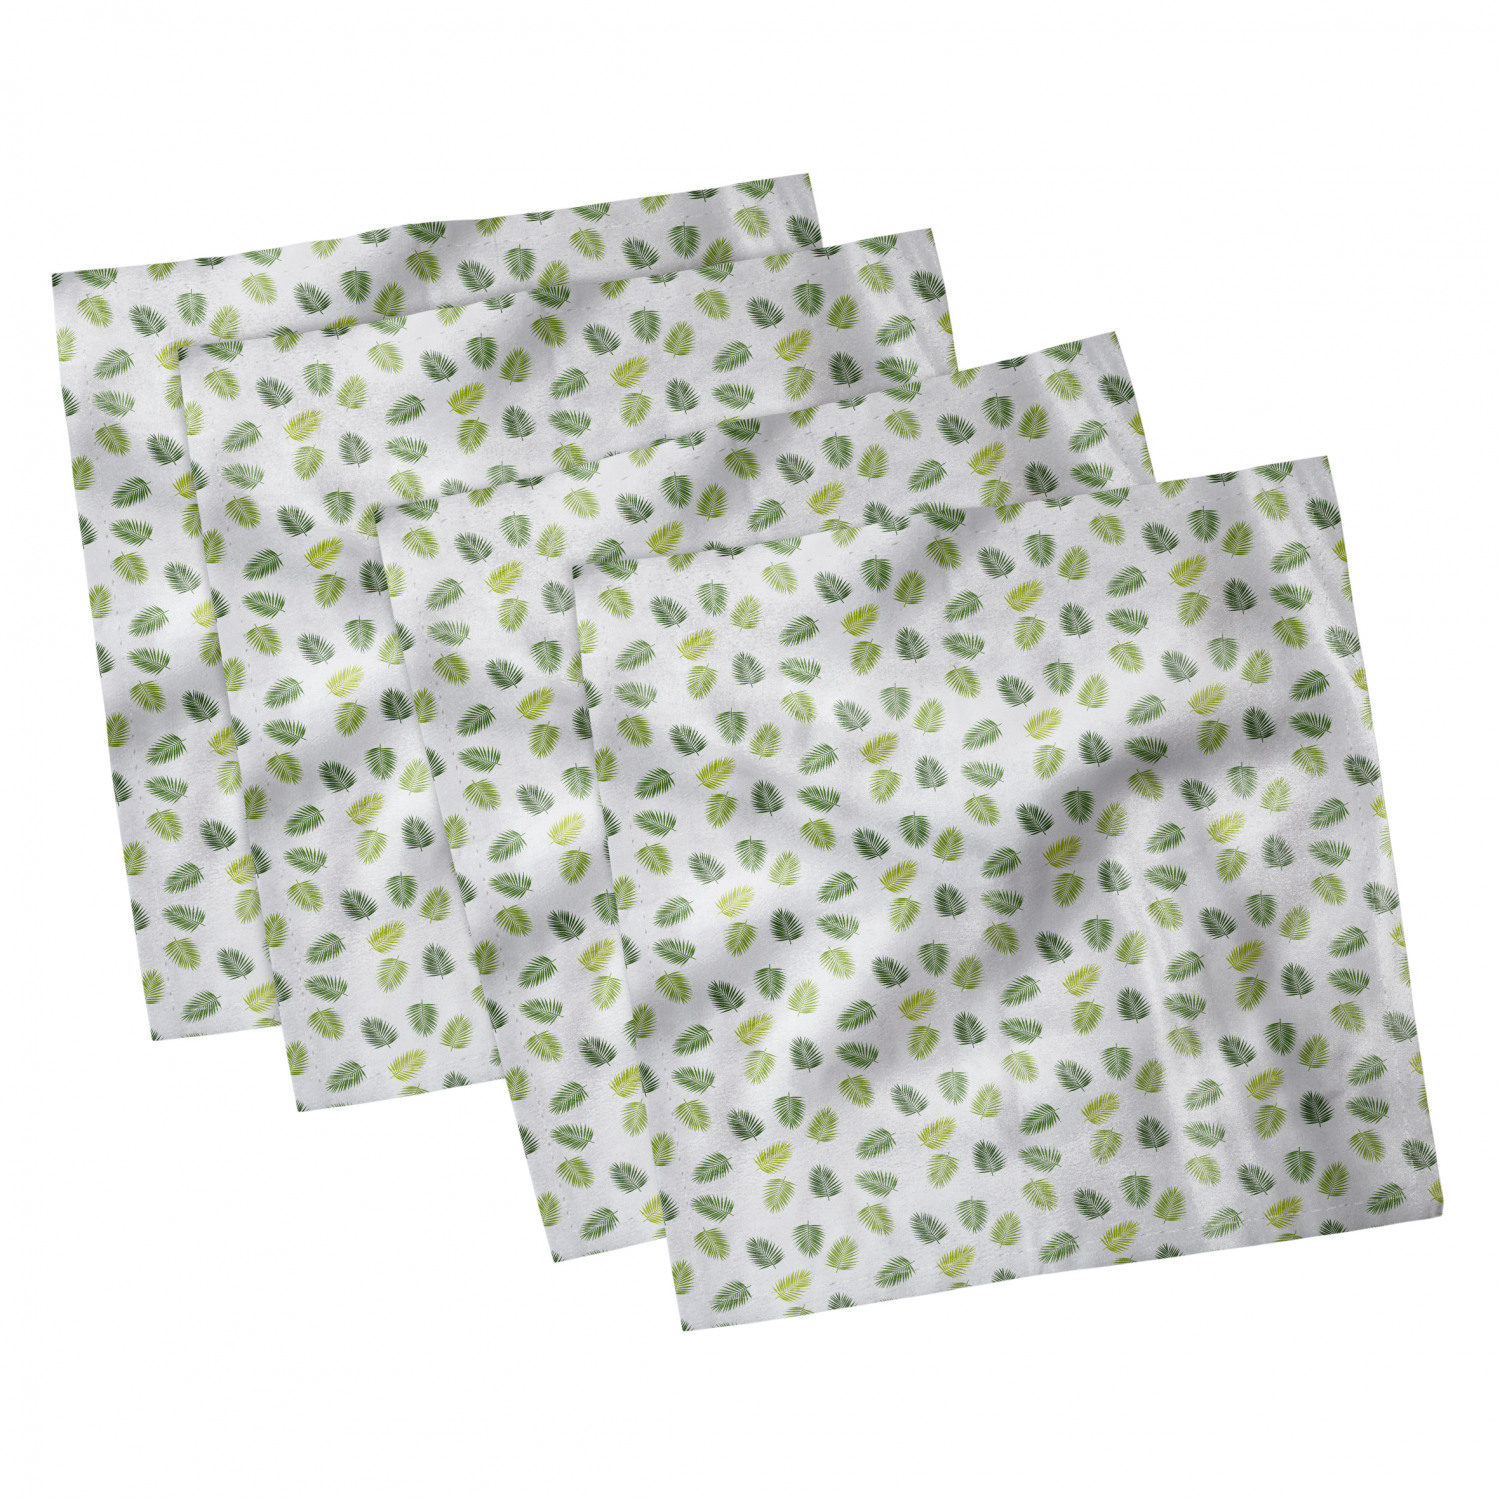 thumbnail 55 - Ambesonne-Leaves-Forest-Decorative-Satin-Napkins-Set-of-4-Party-Dinner-Fabric